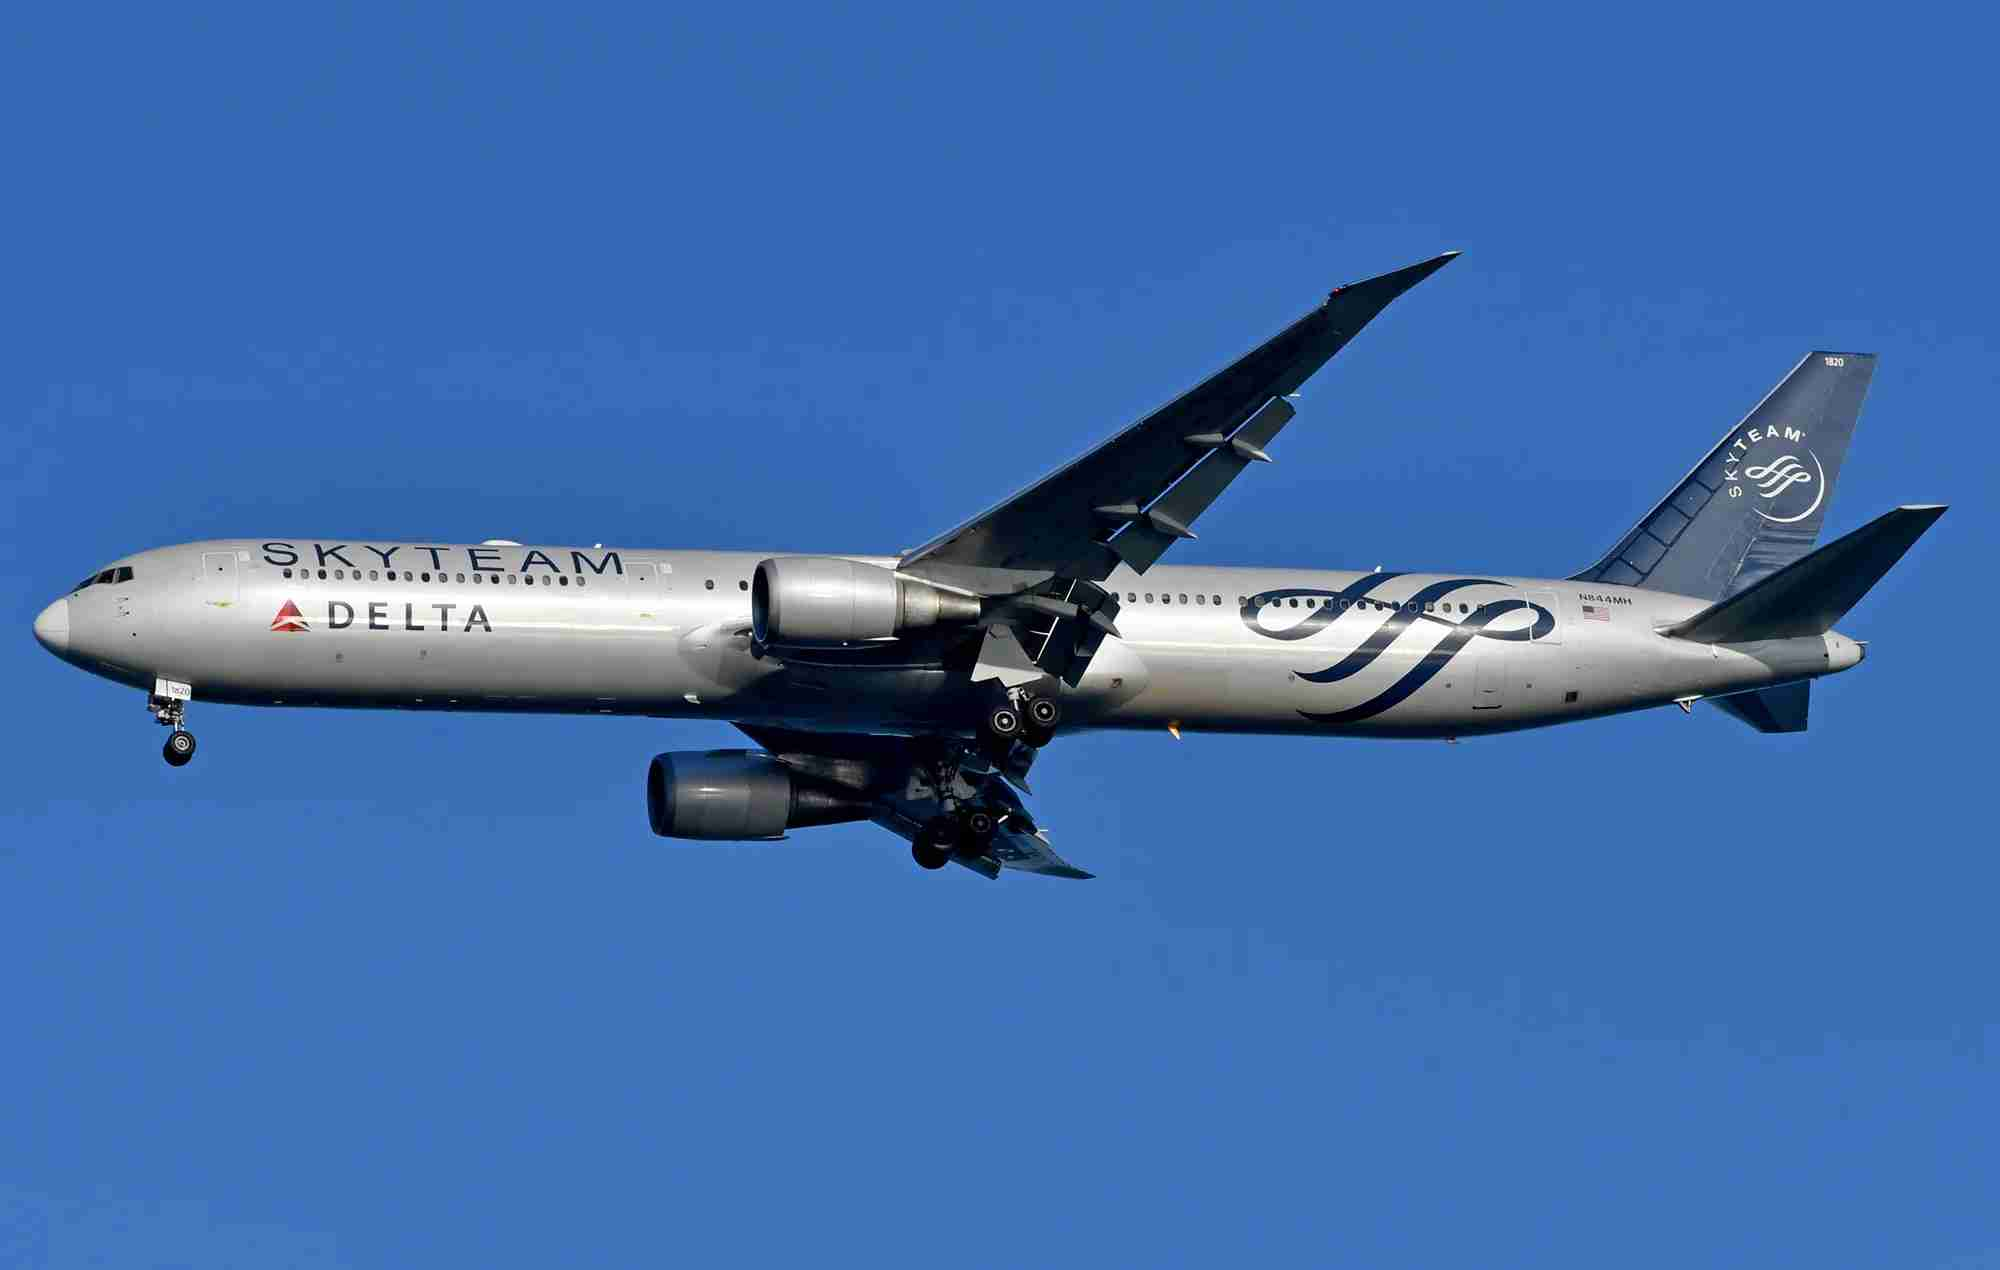 A Delta 767-400ER in Skyteam livery landing at New York - JFK in 2019 (Photo by Alberto Riva / The Points Guy)